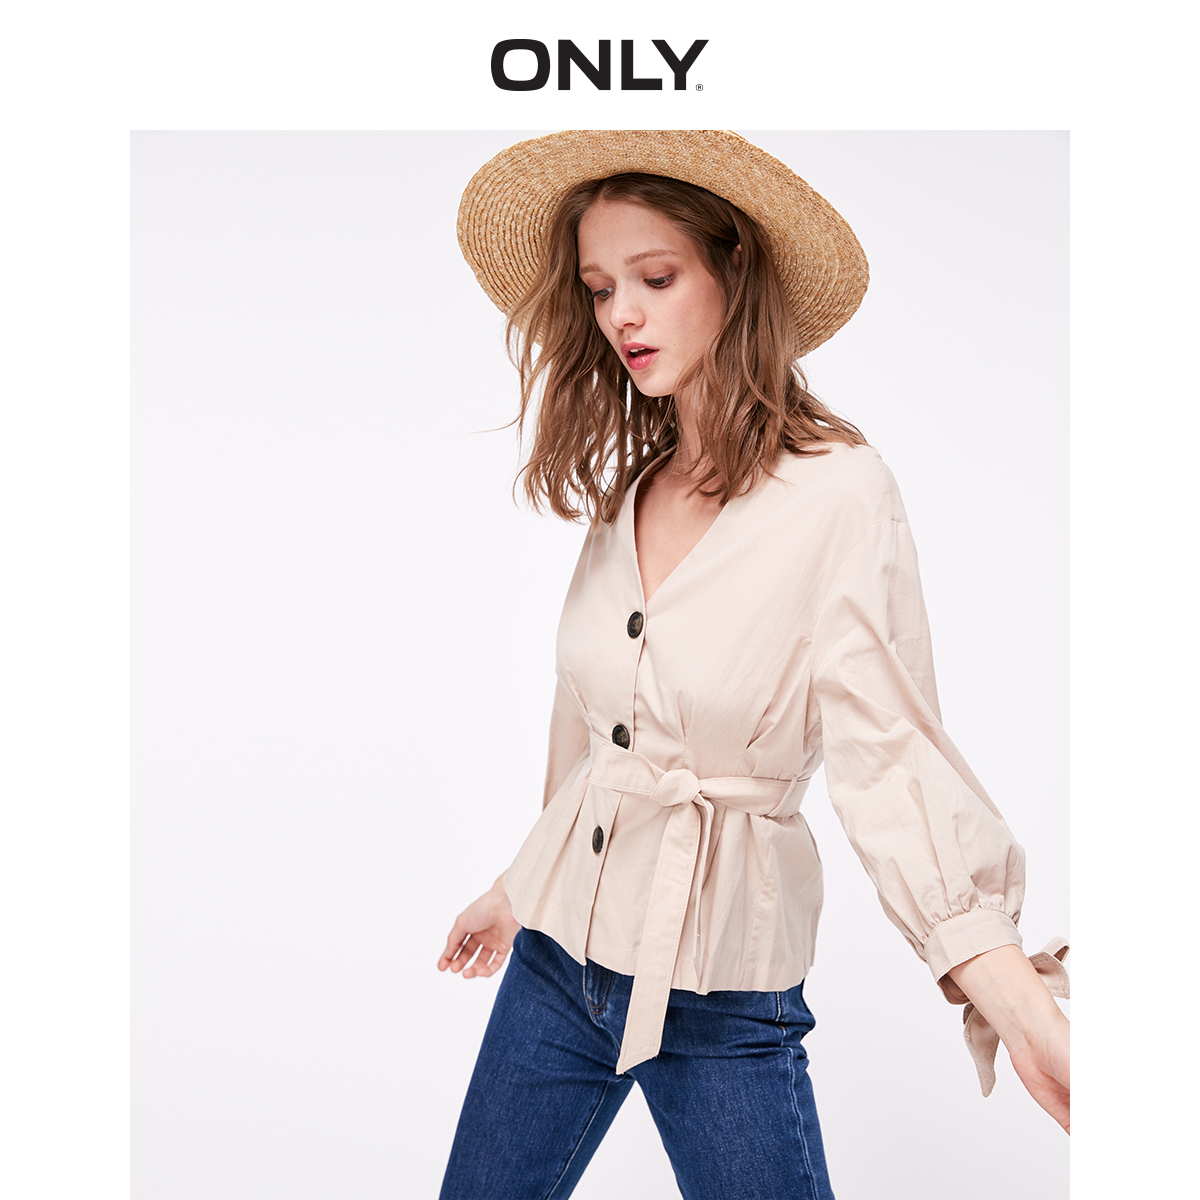 ONLY Women's Slim Fit V-neckline Lace-up Cinched Waist Long-sleeved Shirt | 119105508